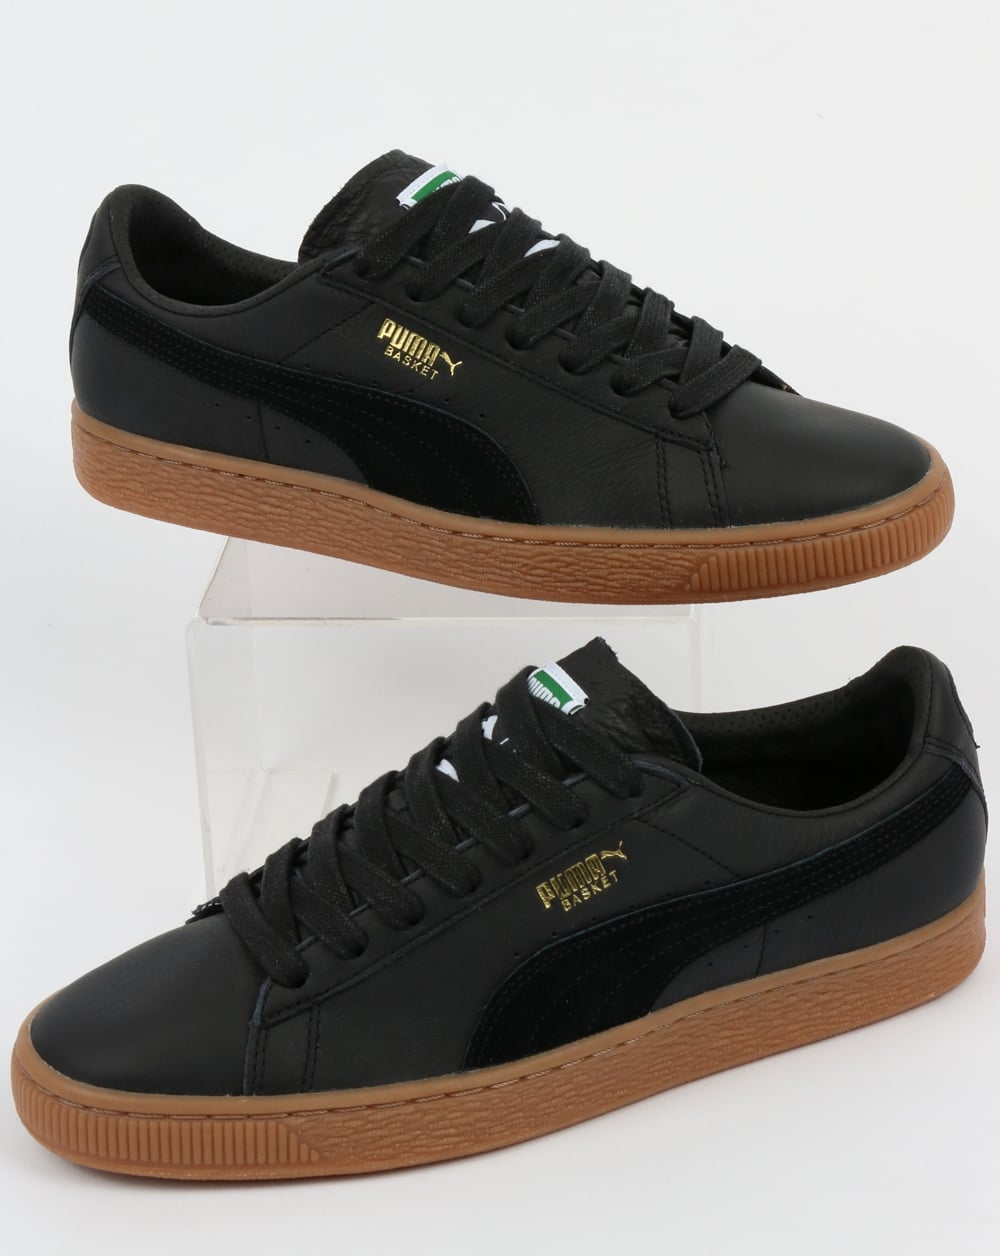 pumashoes$29 on | Burgundy sneakers, Suede pumas and Puma creepers